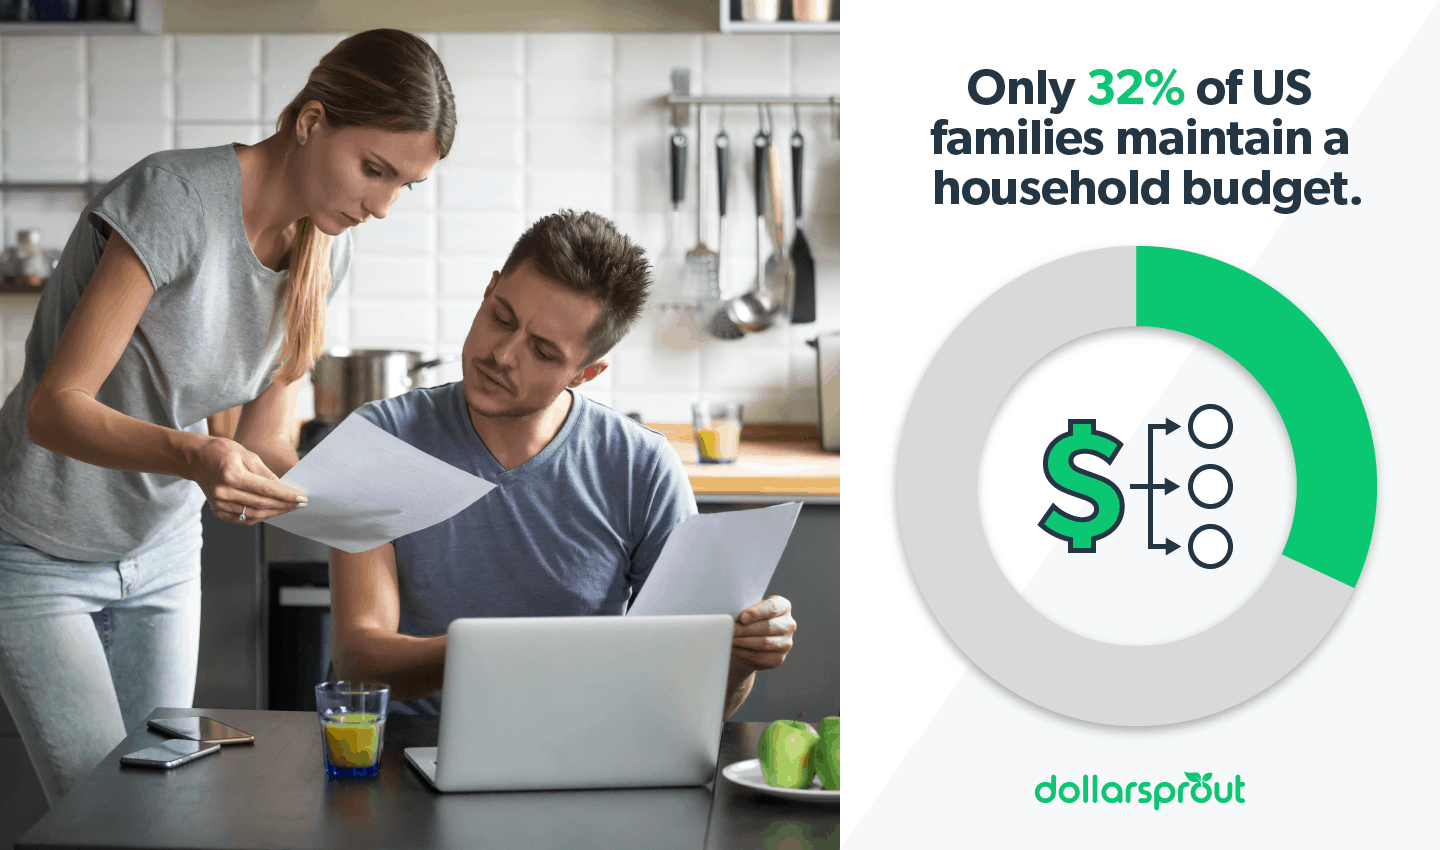 US families maintaining a household budget